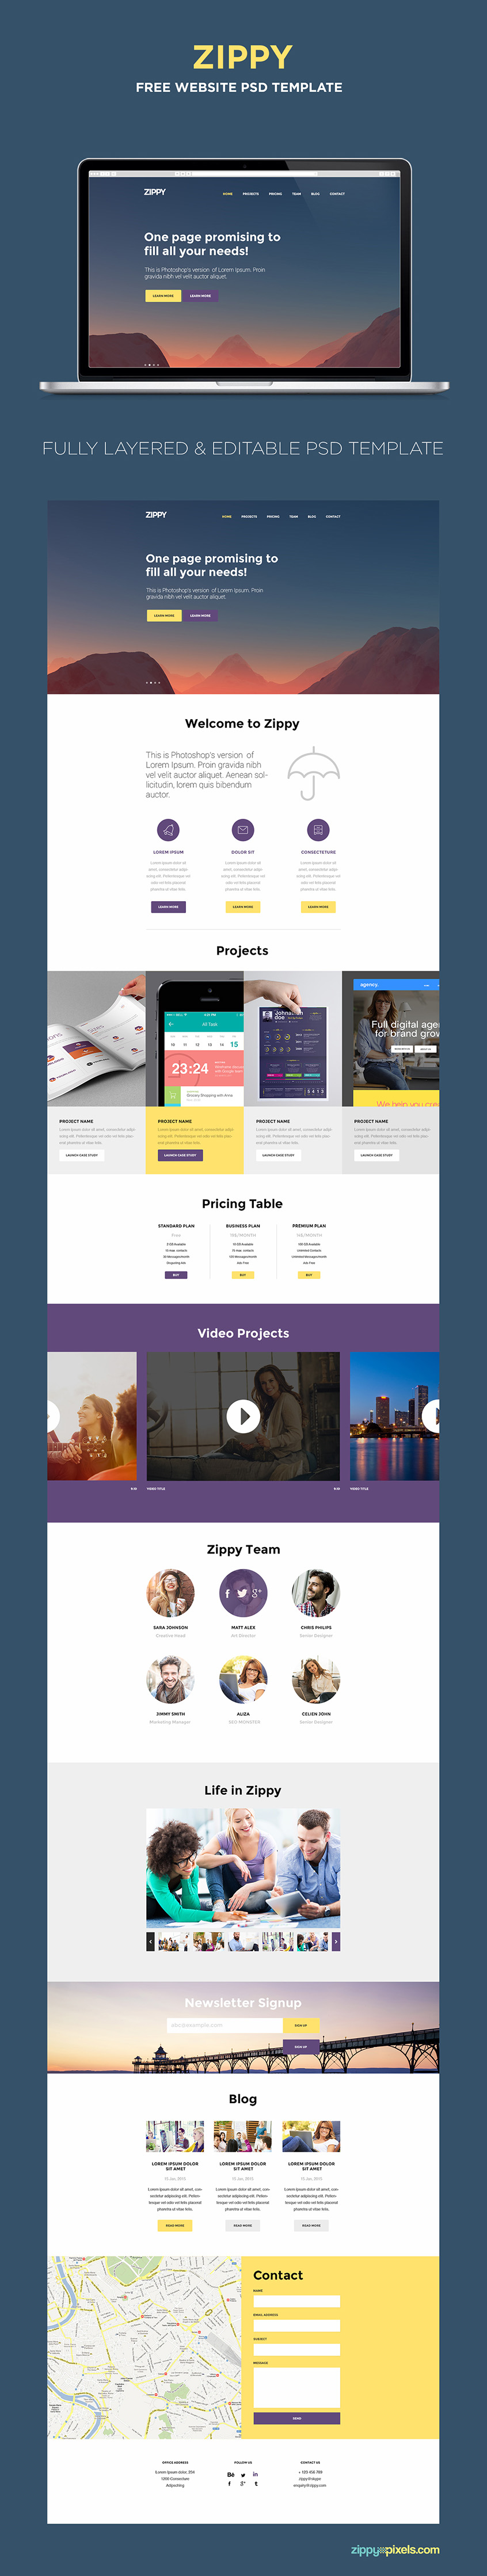 Free One Page Website Template PSD ZippyPixels - Free web site template